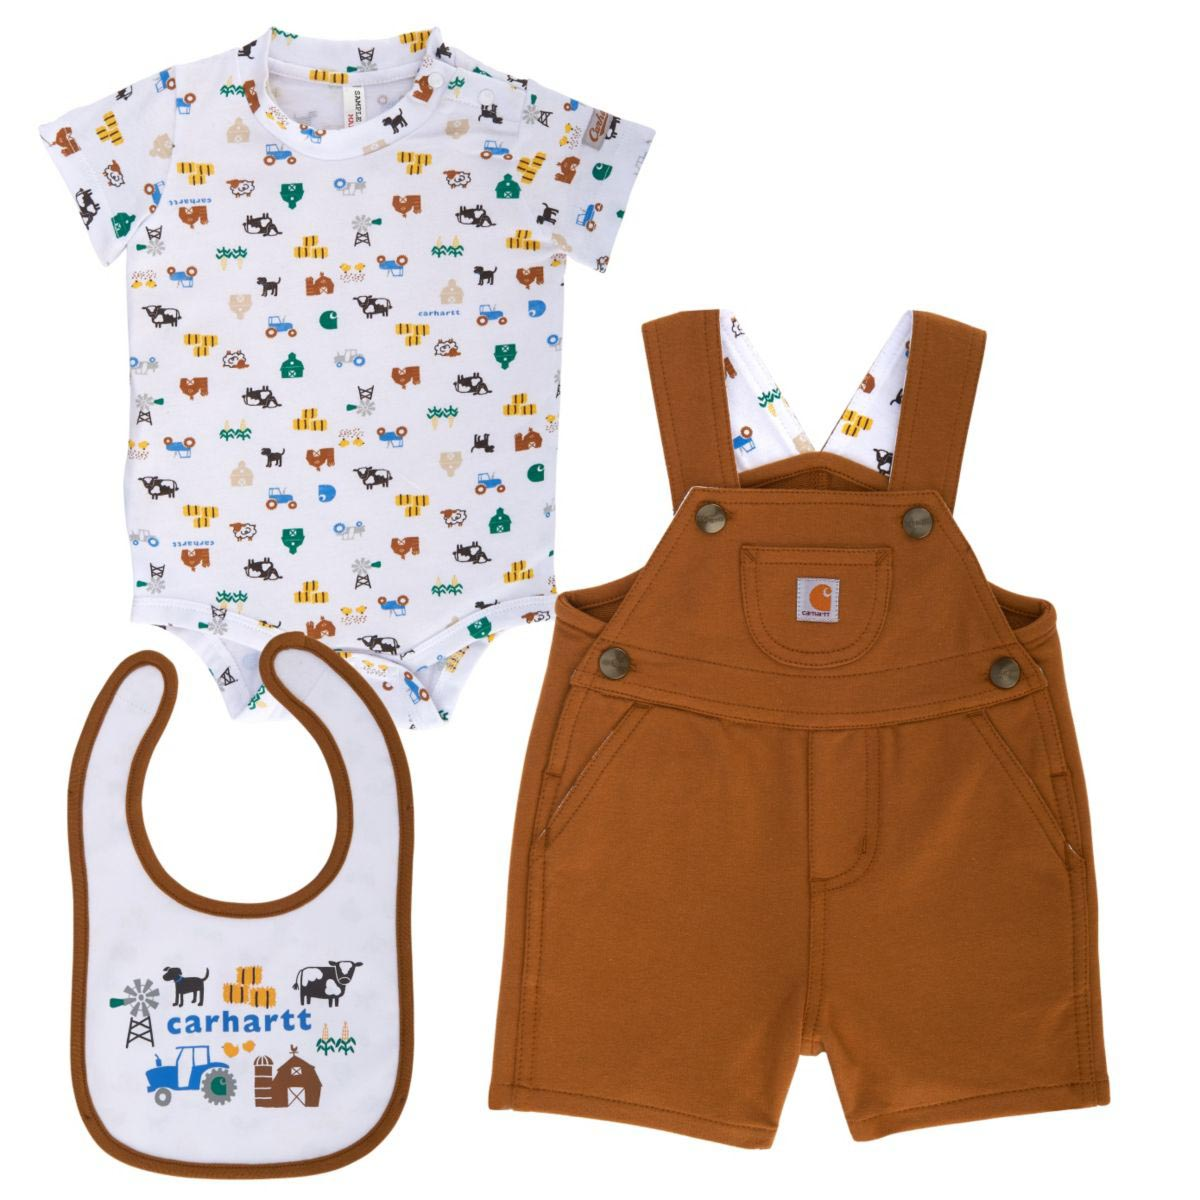 Carhartt Infant Boys' Carhartt Shortall 3 Piece Gift Set